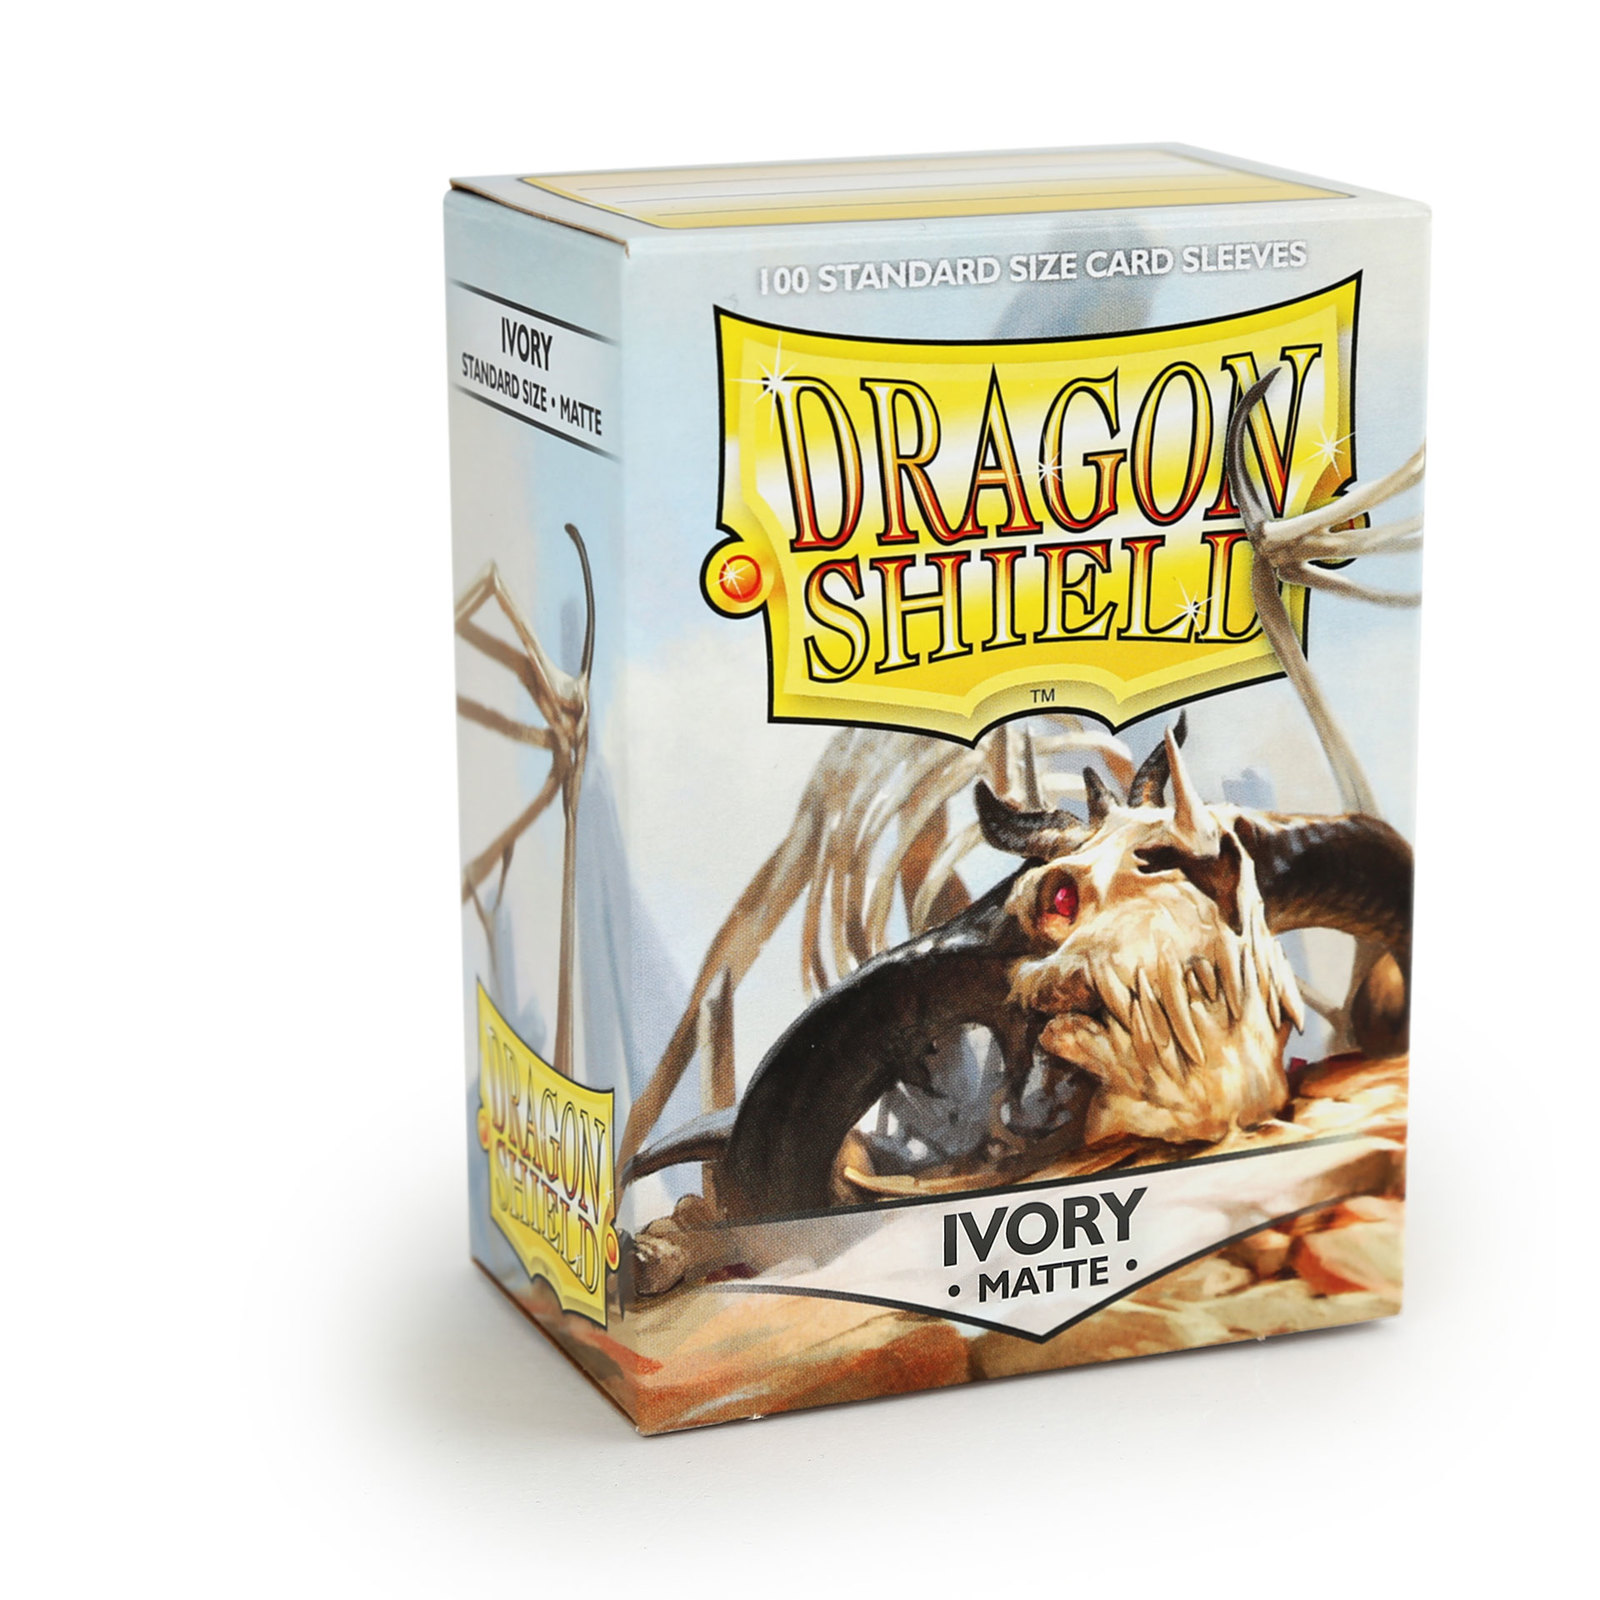 Dragon Shield Matte Ivory Sleeves image